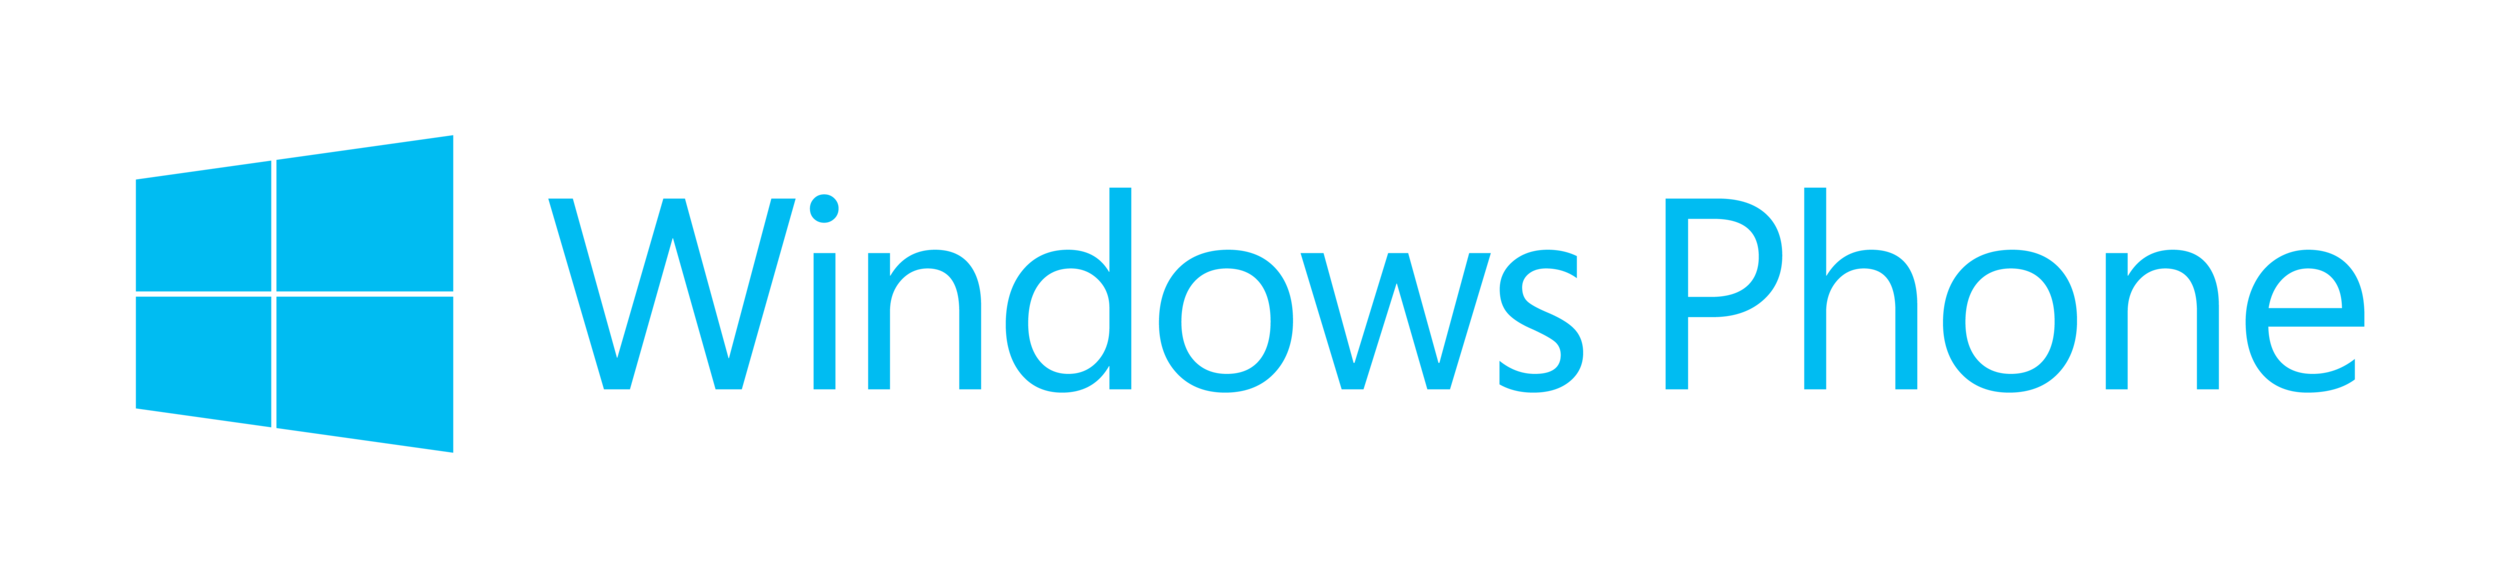 Windows_Phone_logo.png